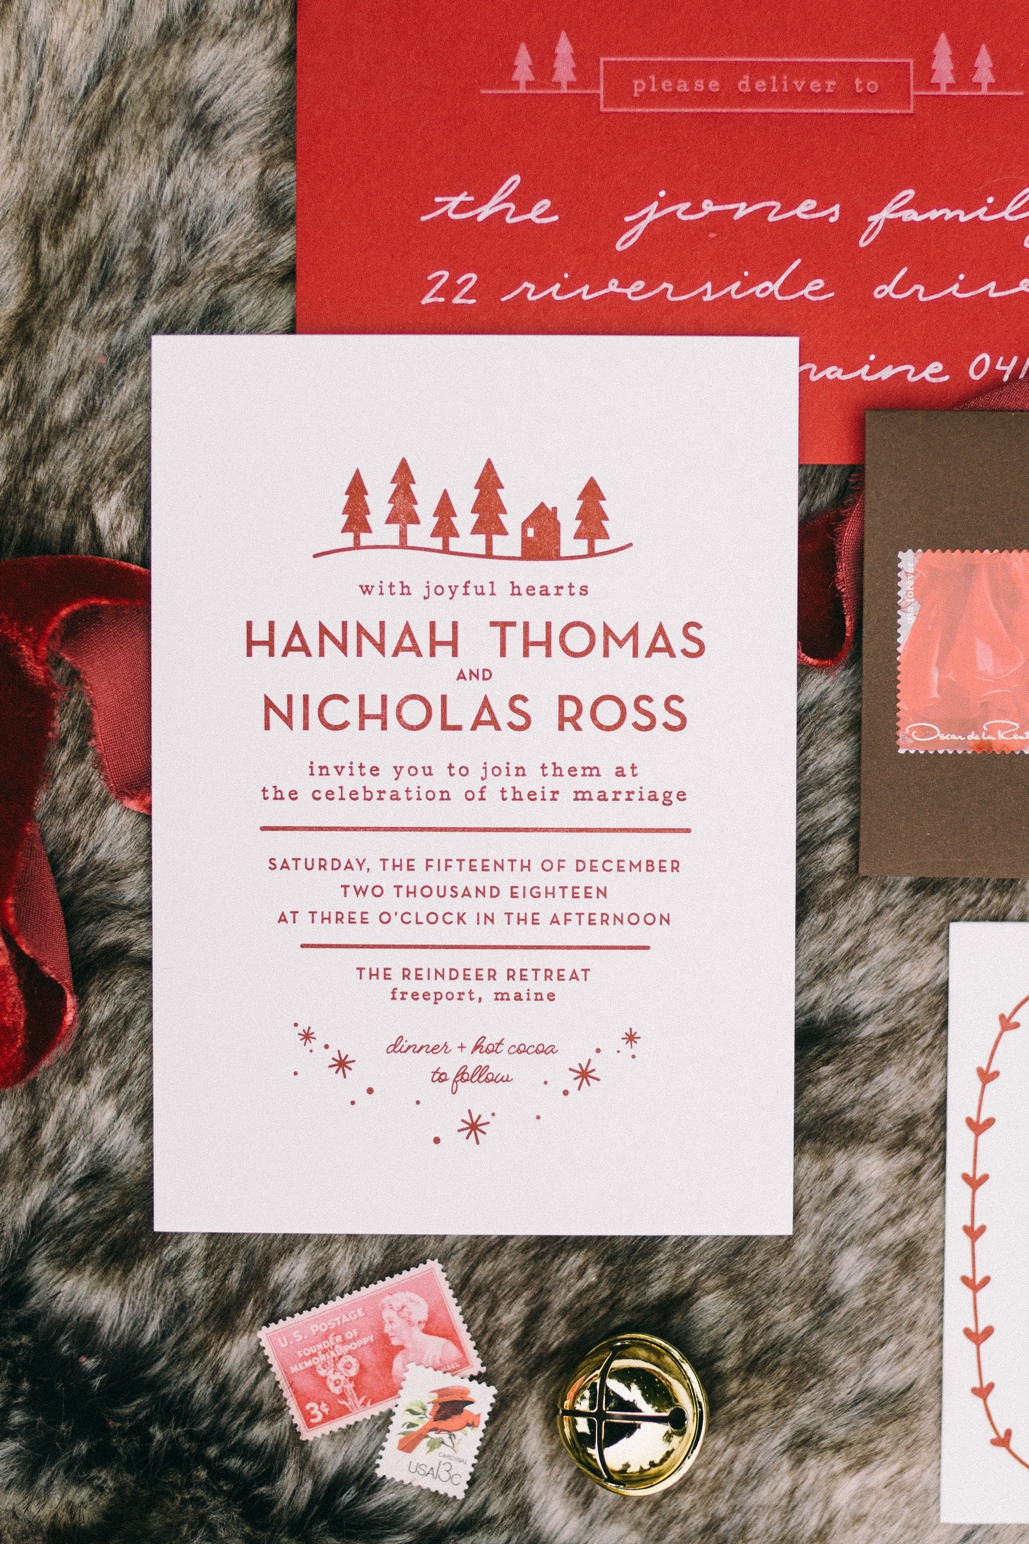 letterpress printed one of a kind wedding invitations, custom designed and illustrated just for your wedding theme